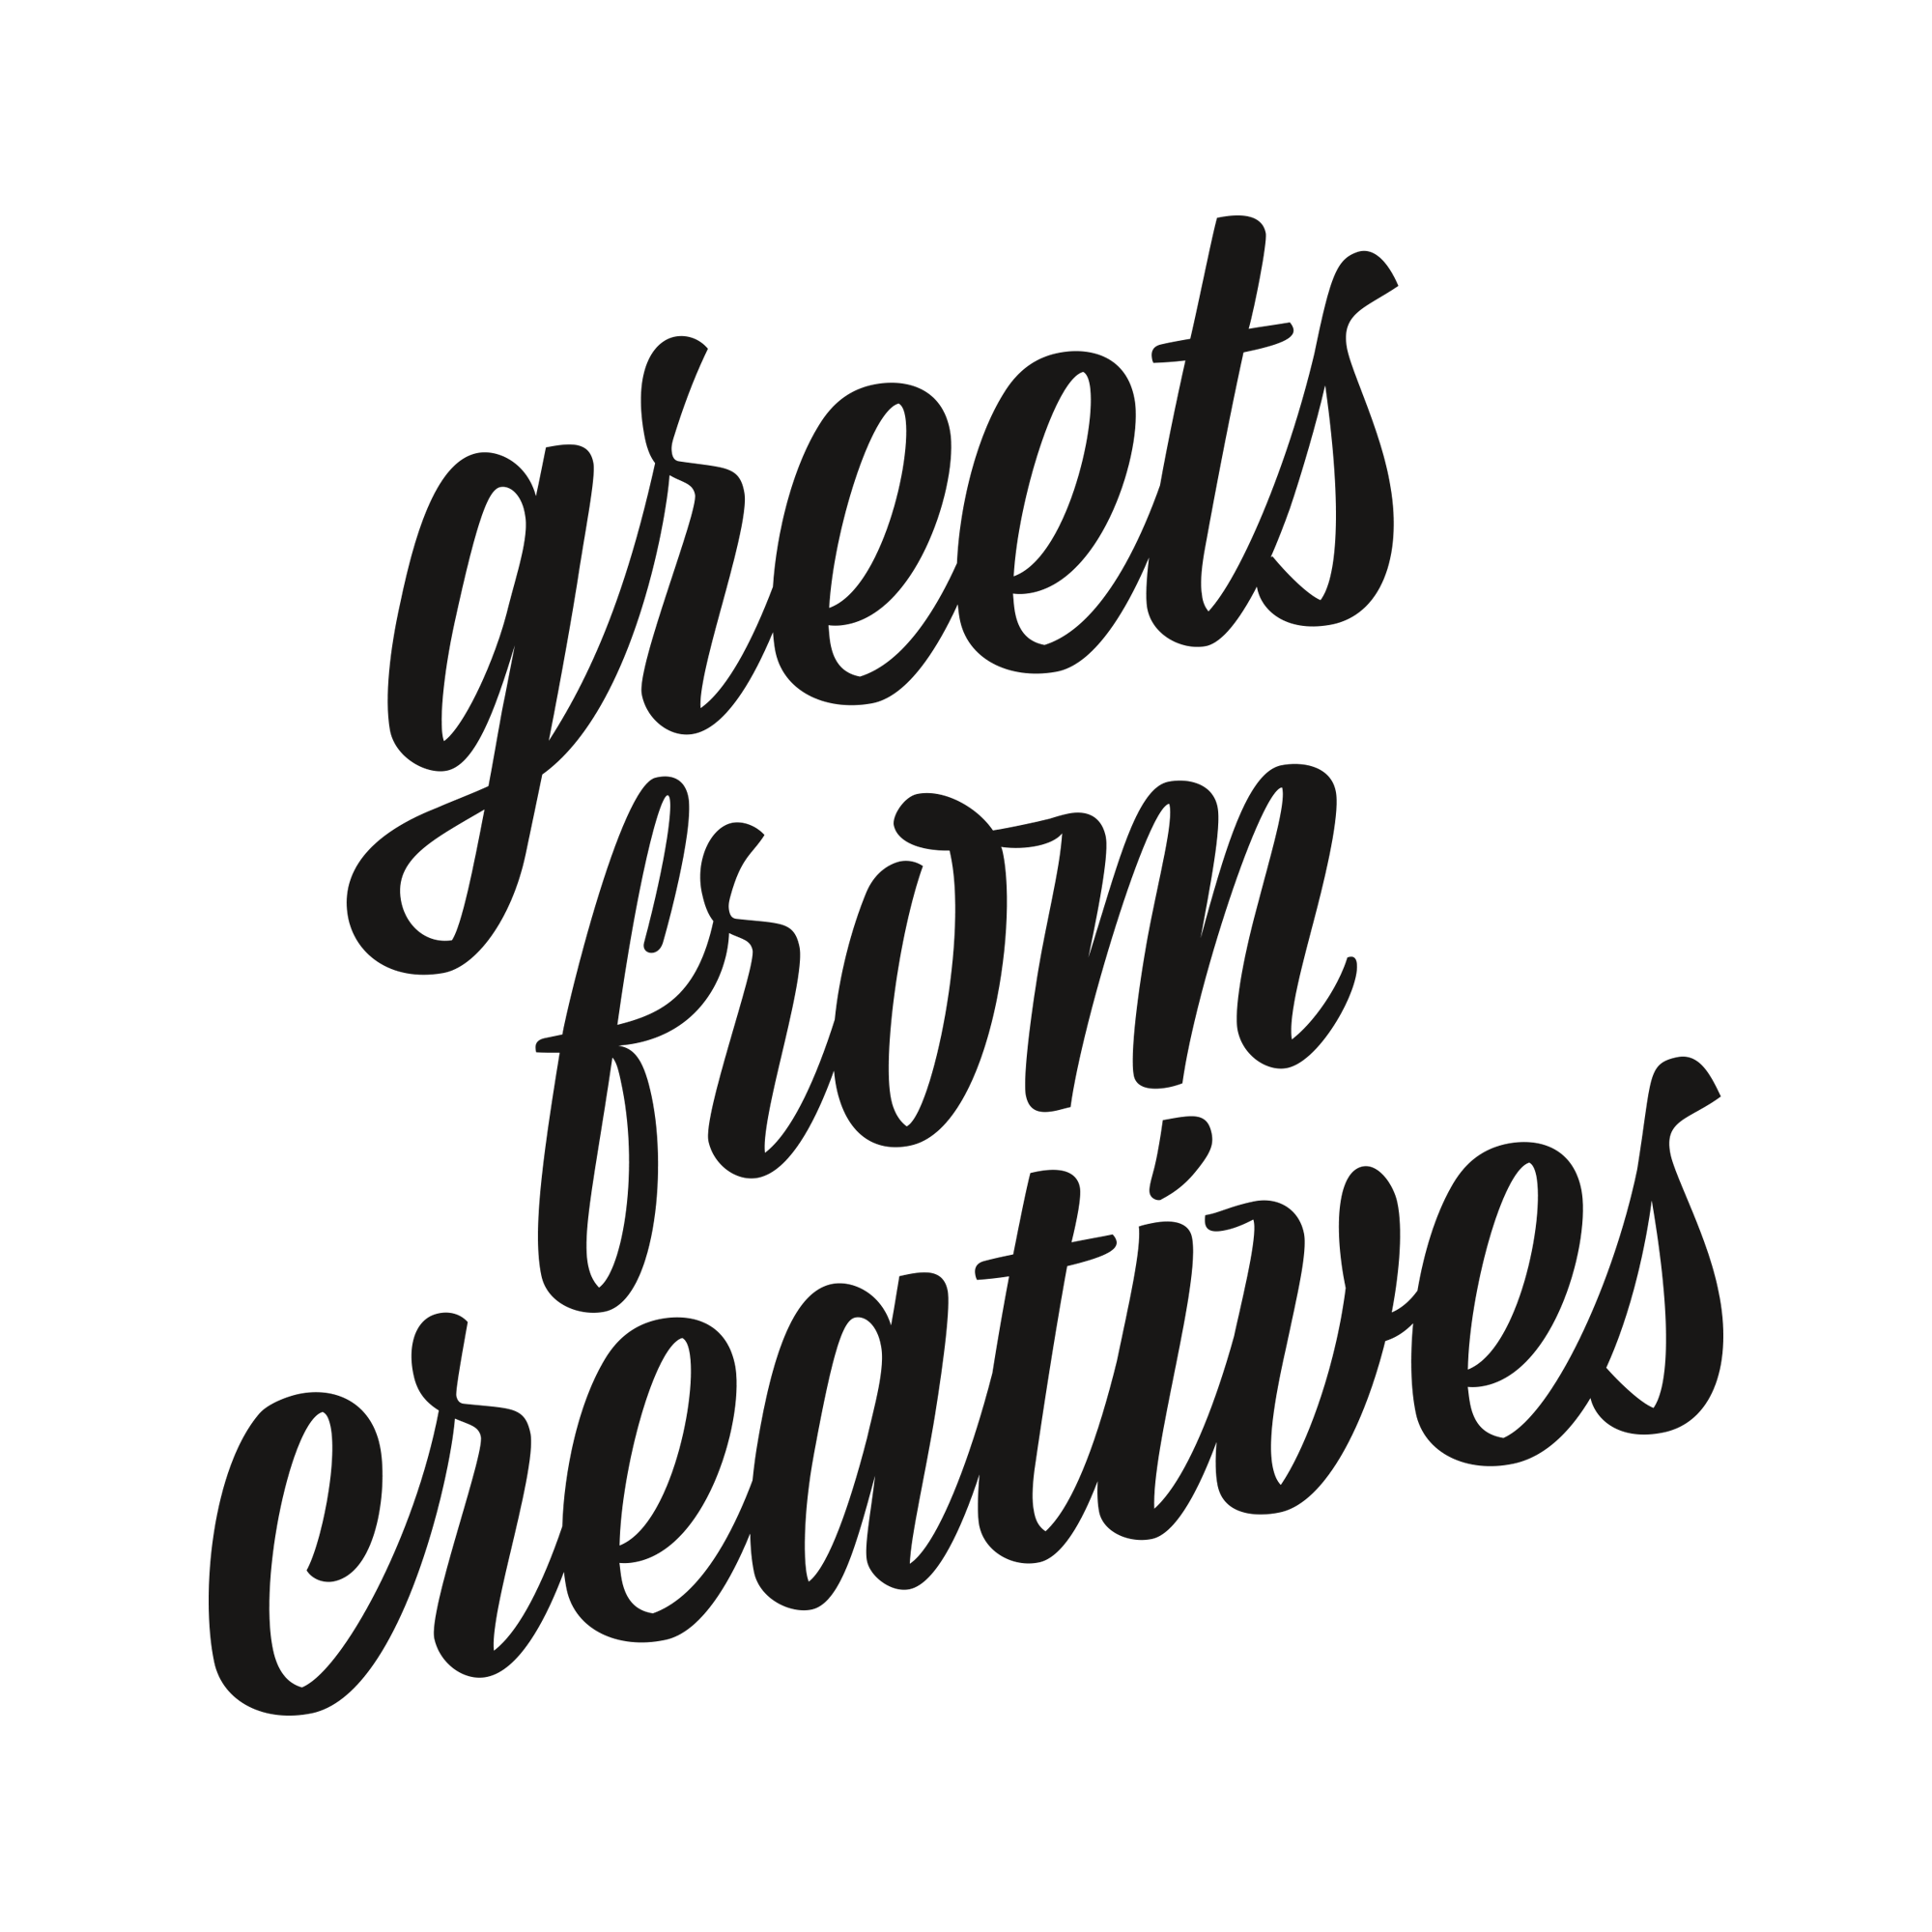 Greets from Creatives